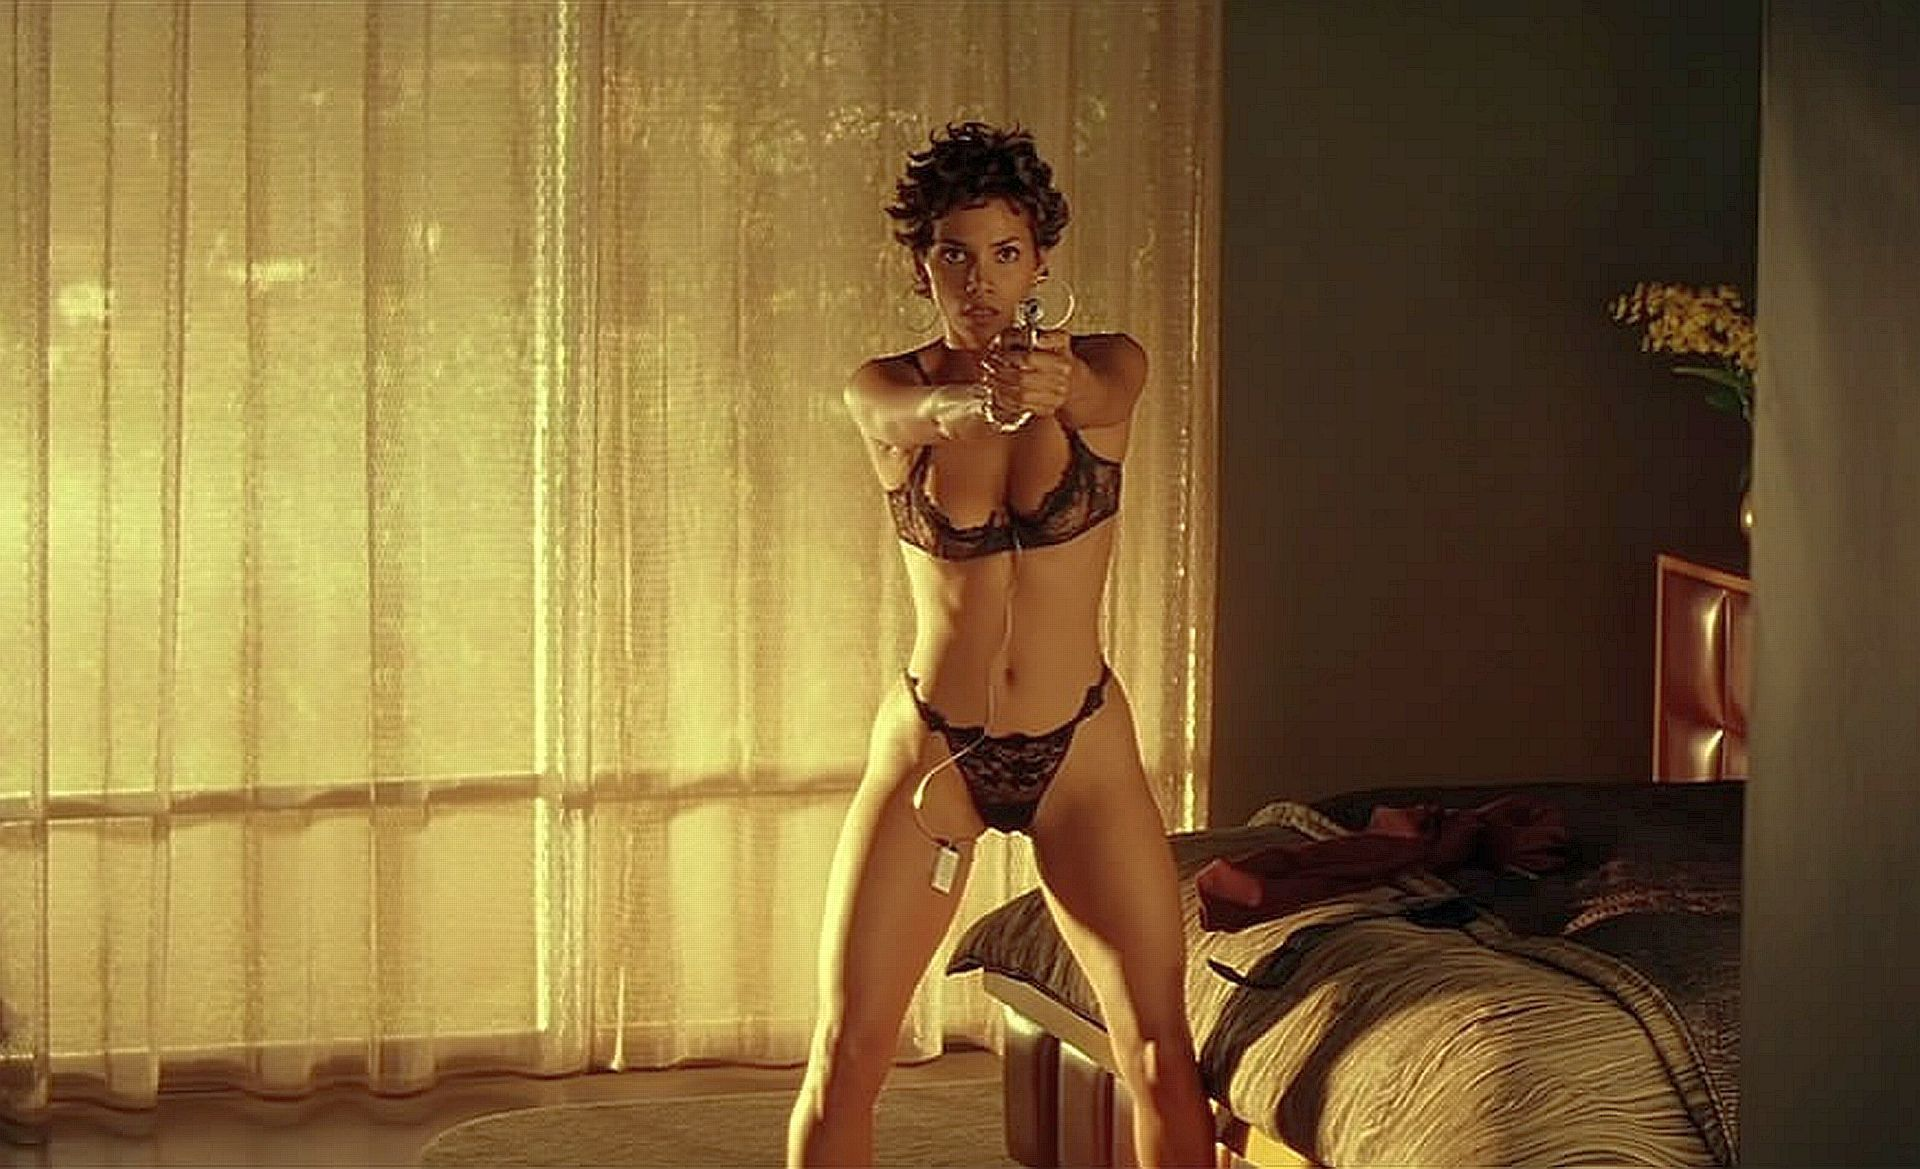 halle berry swordfish gif pictures armed sexy women. Black Bedroom Furniture Sets. Home Design Ideas